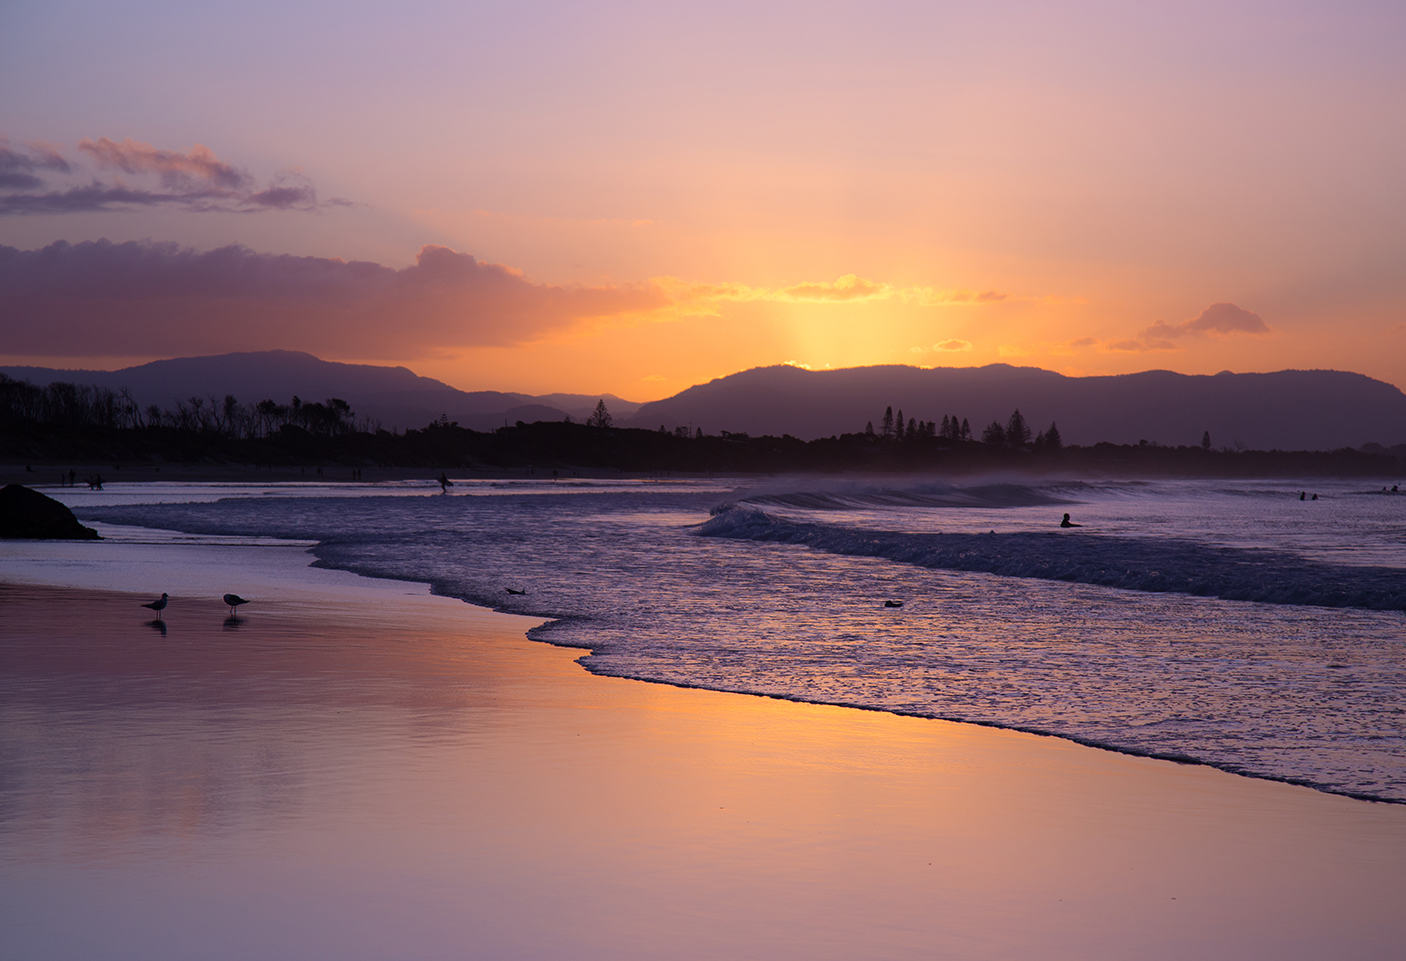 Byron Bay Sunset image